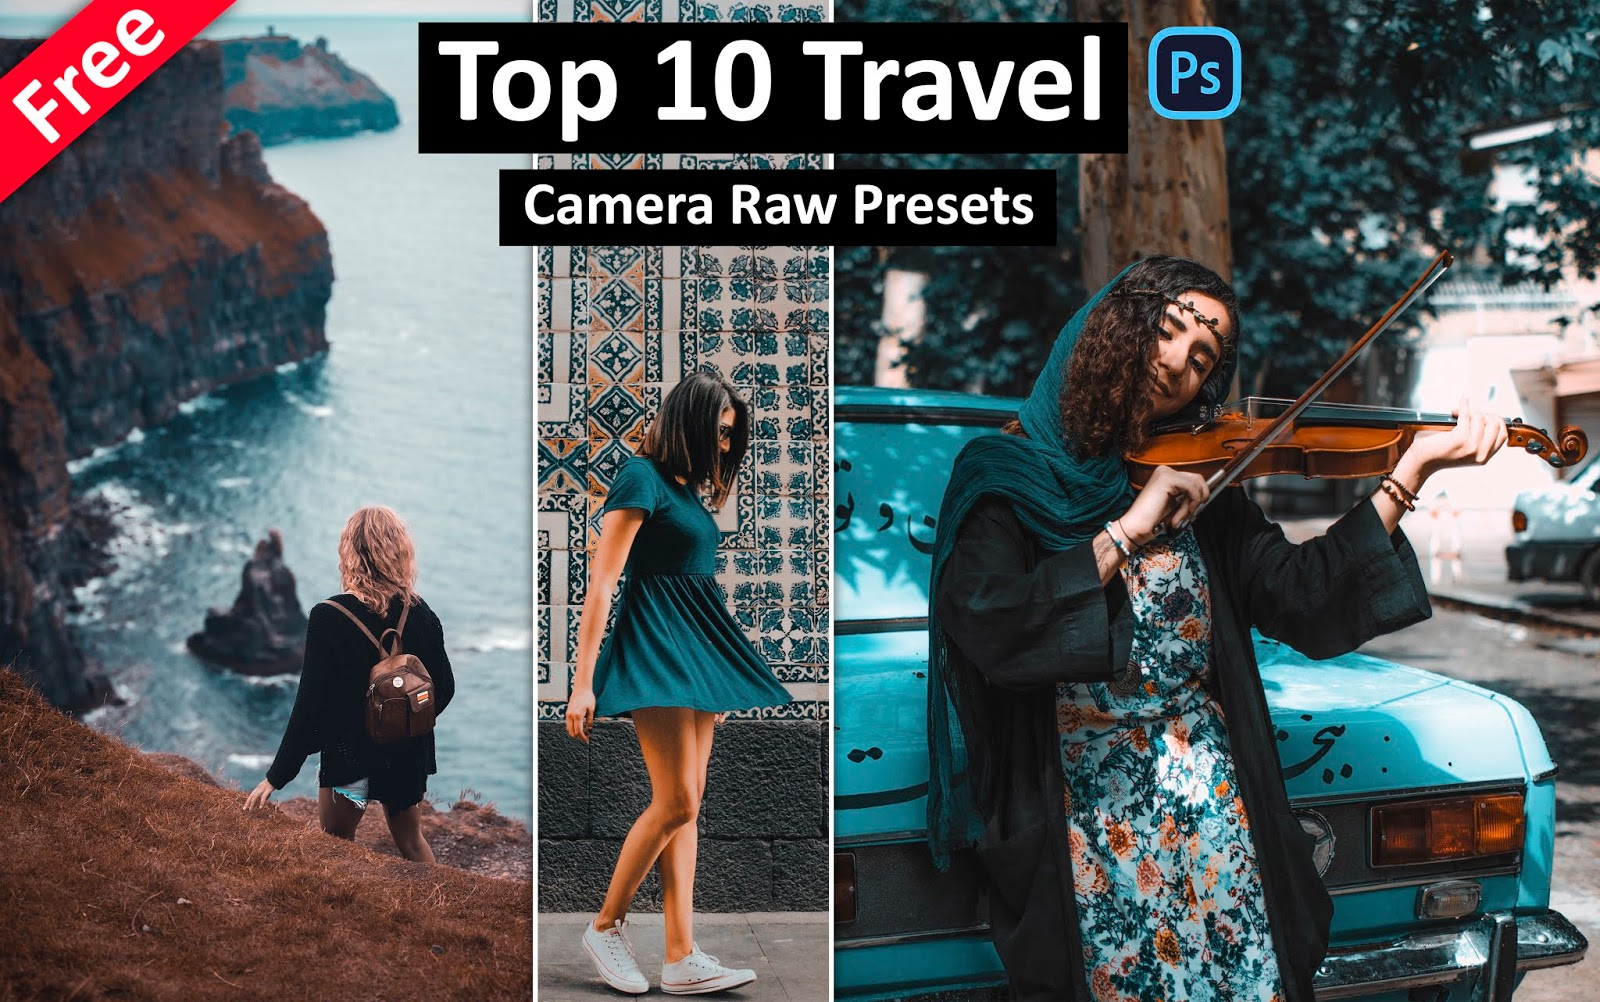 Download Top 10 Travel Camera Raw Presets for Free | How to Edit Travel Photos in Photoshop